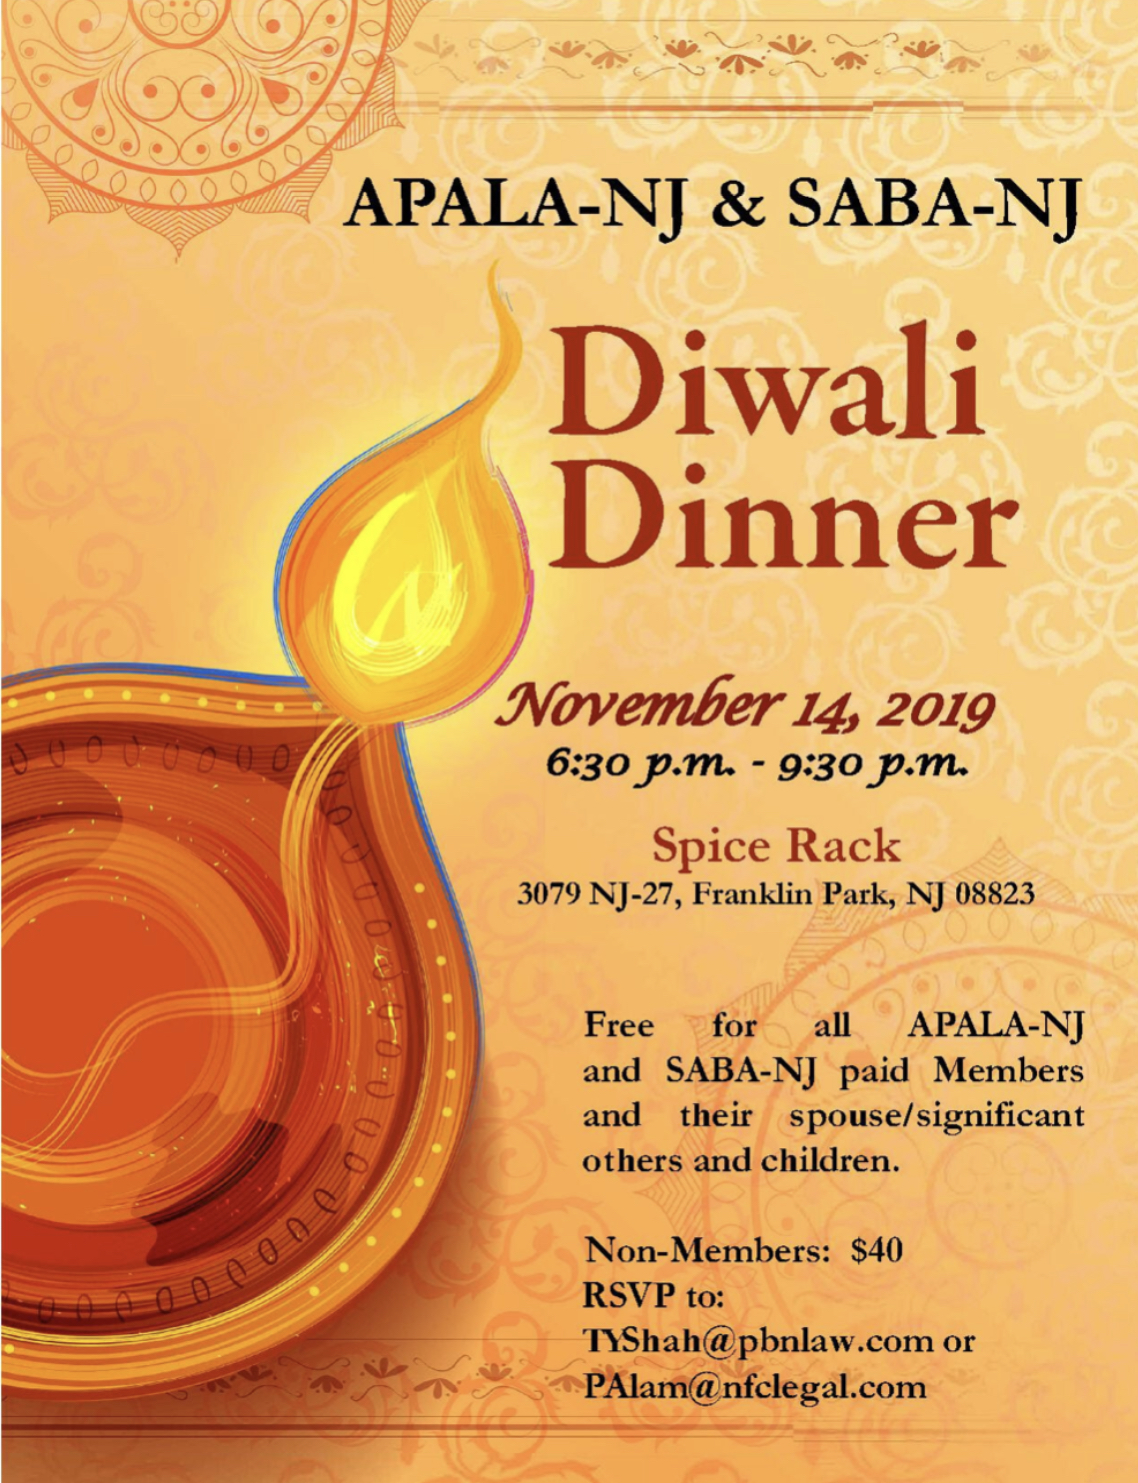 APALA-NJ & SABA-NJ - Diwali Dinner